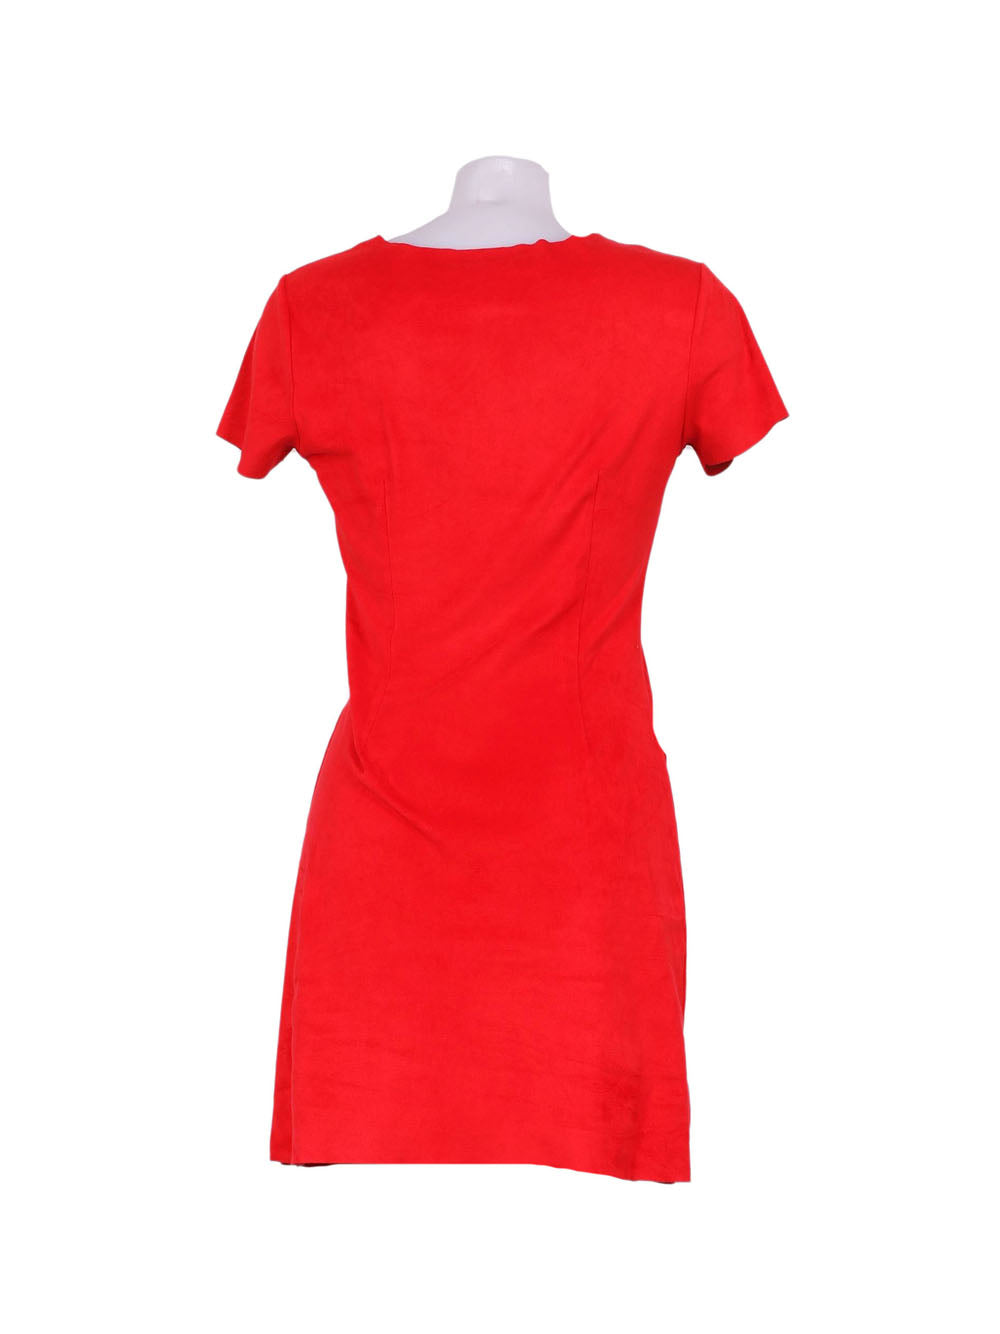 Back photo of Preloved nana baila Red Woman's dress - size 8/S